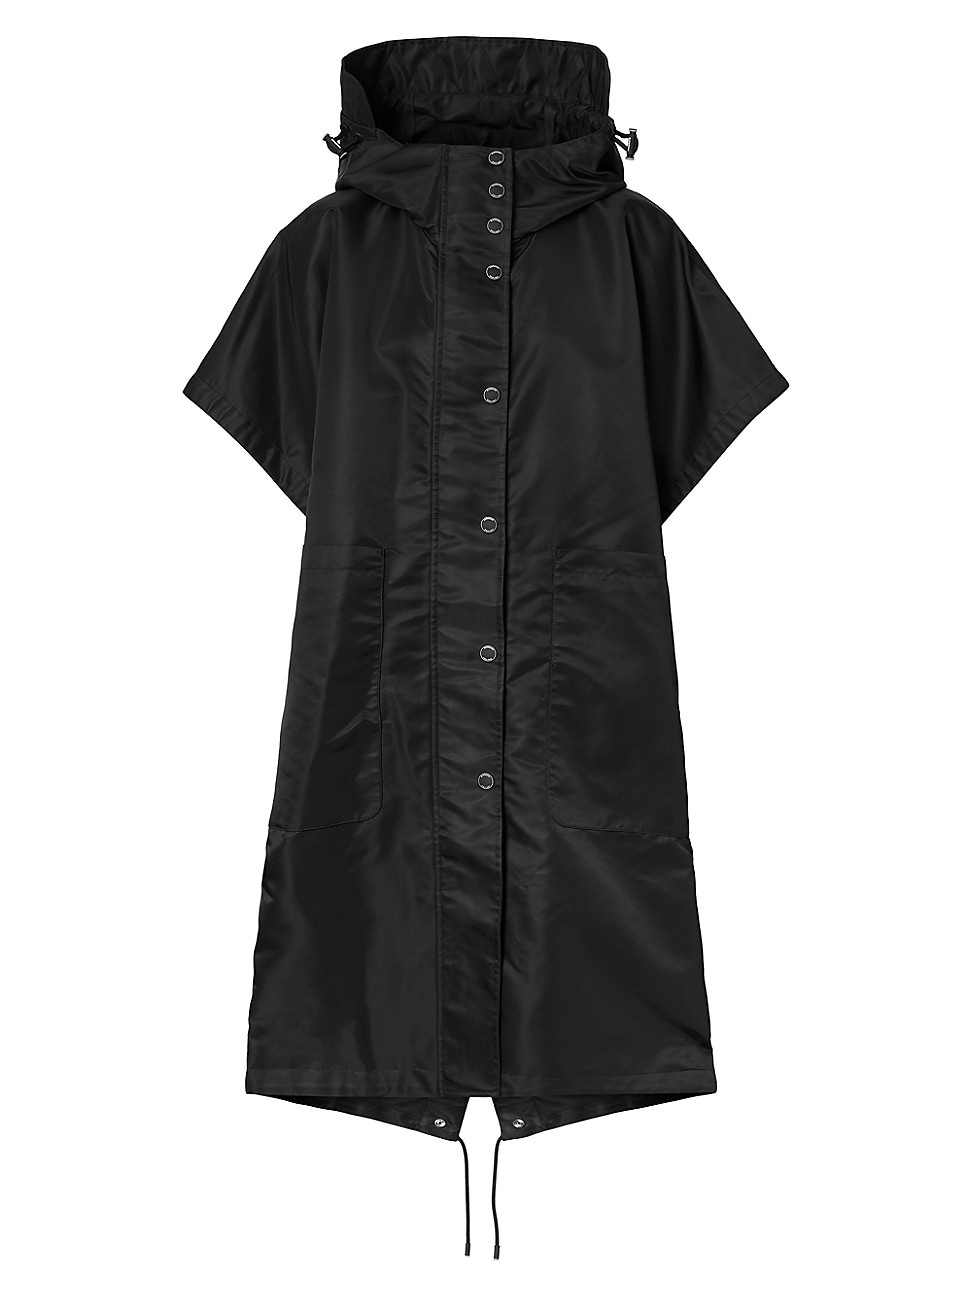 Burberry Capes WOMEN'S HORSEFERRY PRINT RECYCLED NYLON HOODED CAPE